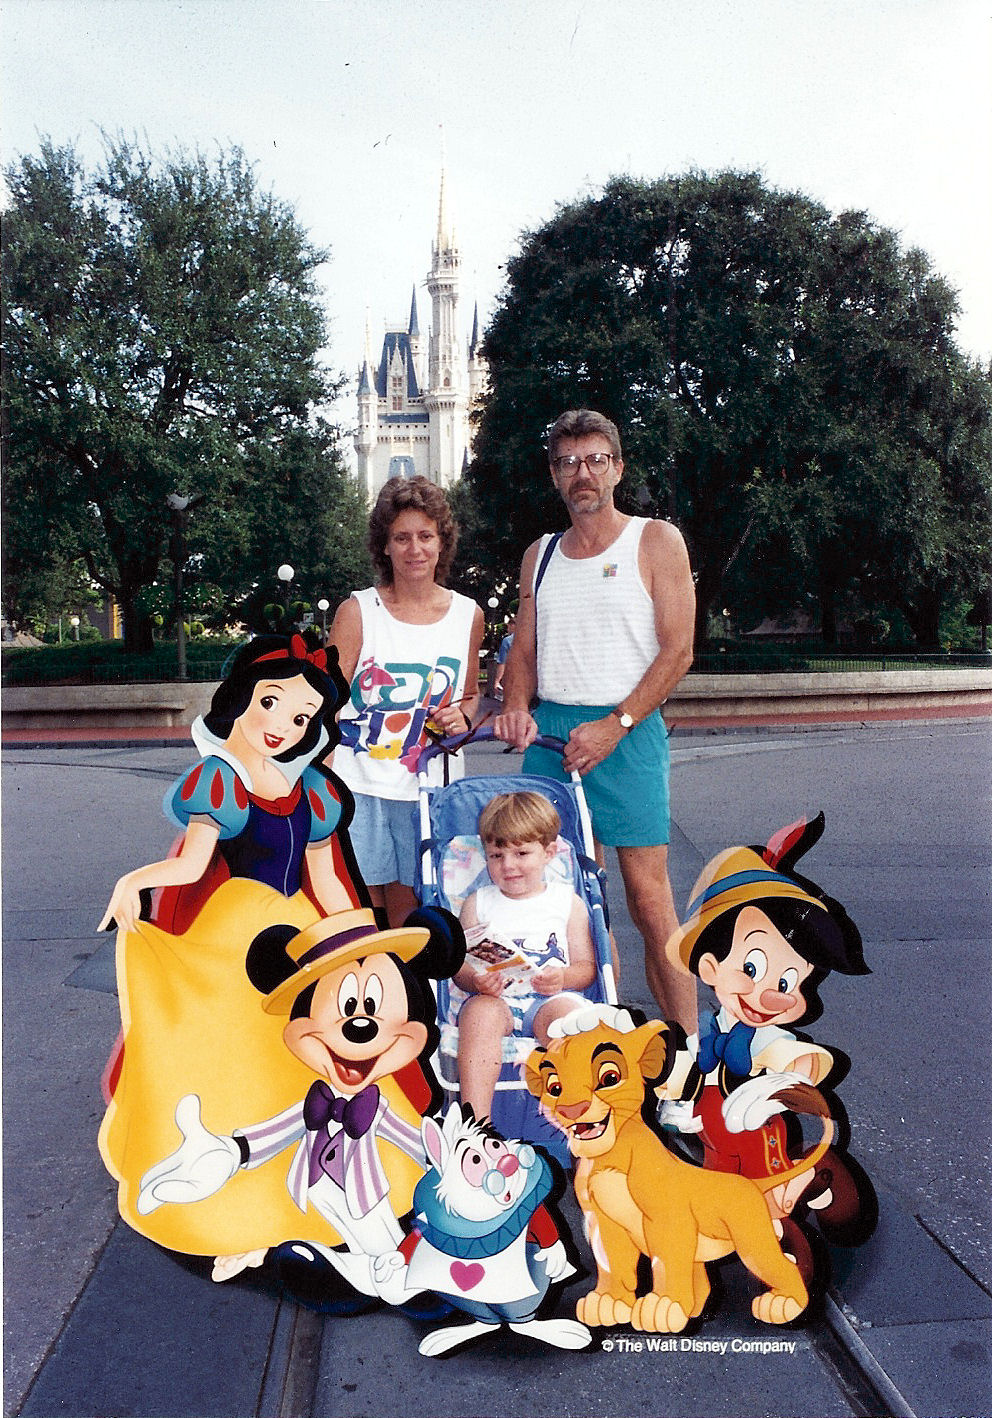 Max, Mom and Dad in with Disney characters.